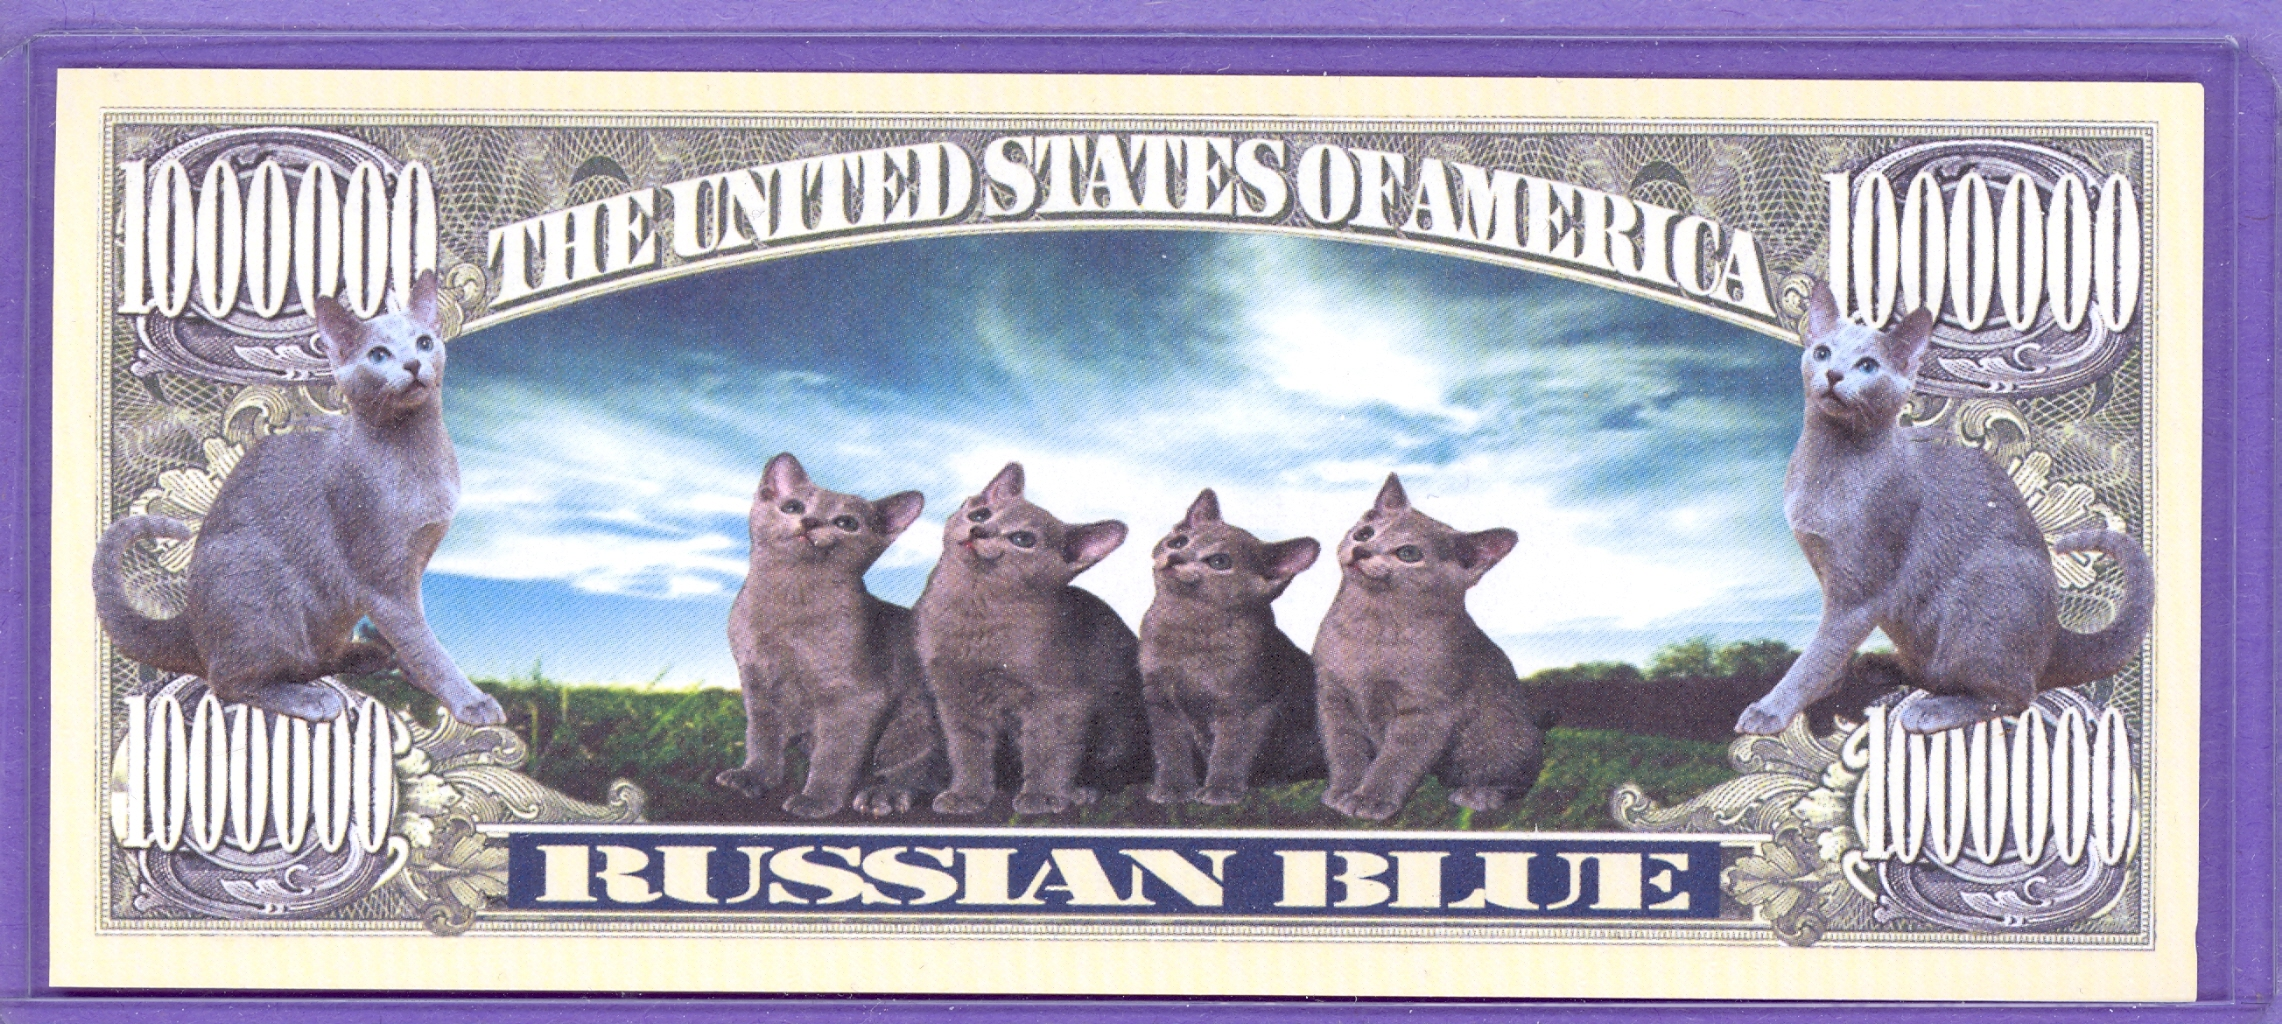 Russian Blue $1,000,000 Novelty Note - Cats